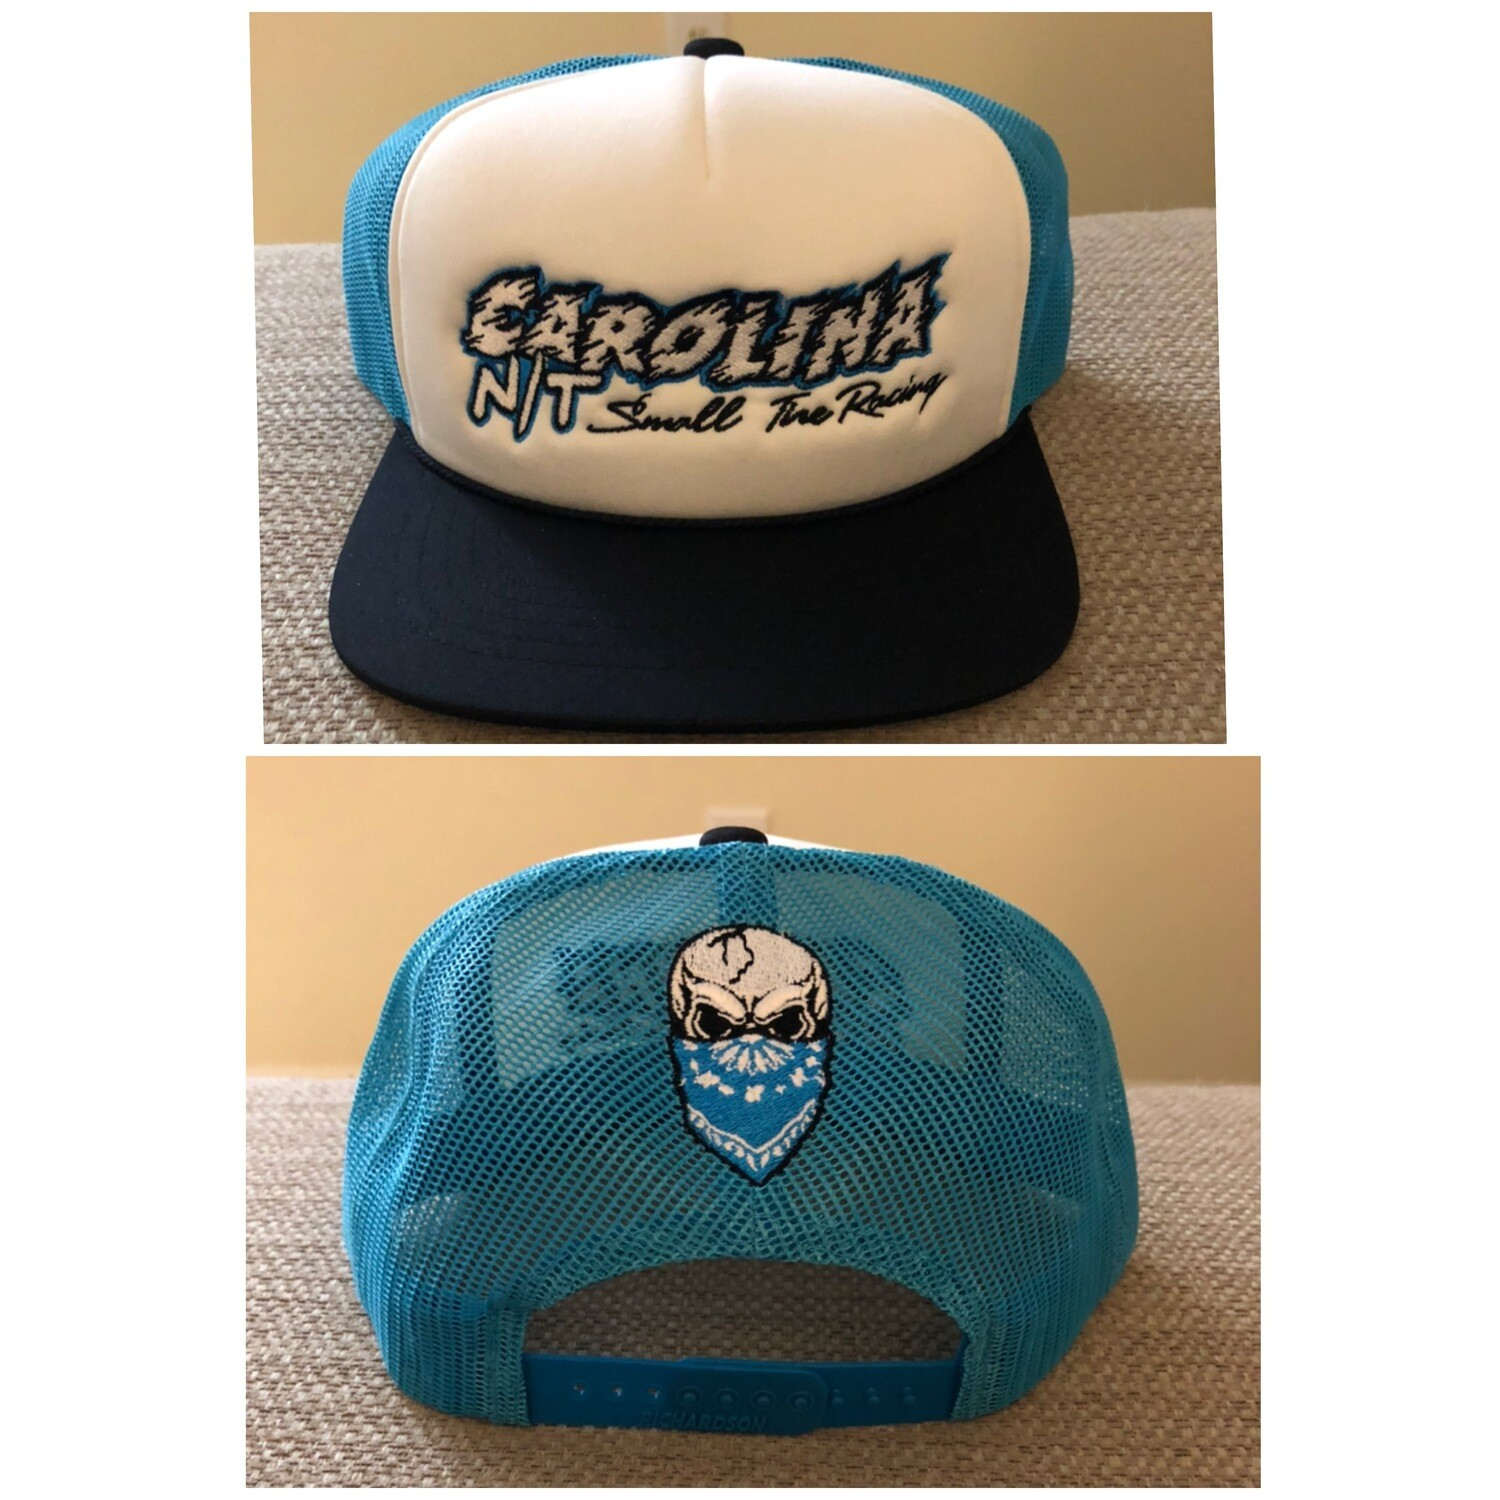 Carolina Blue / New Carolina NT letters Trucker Hat